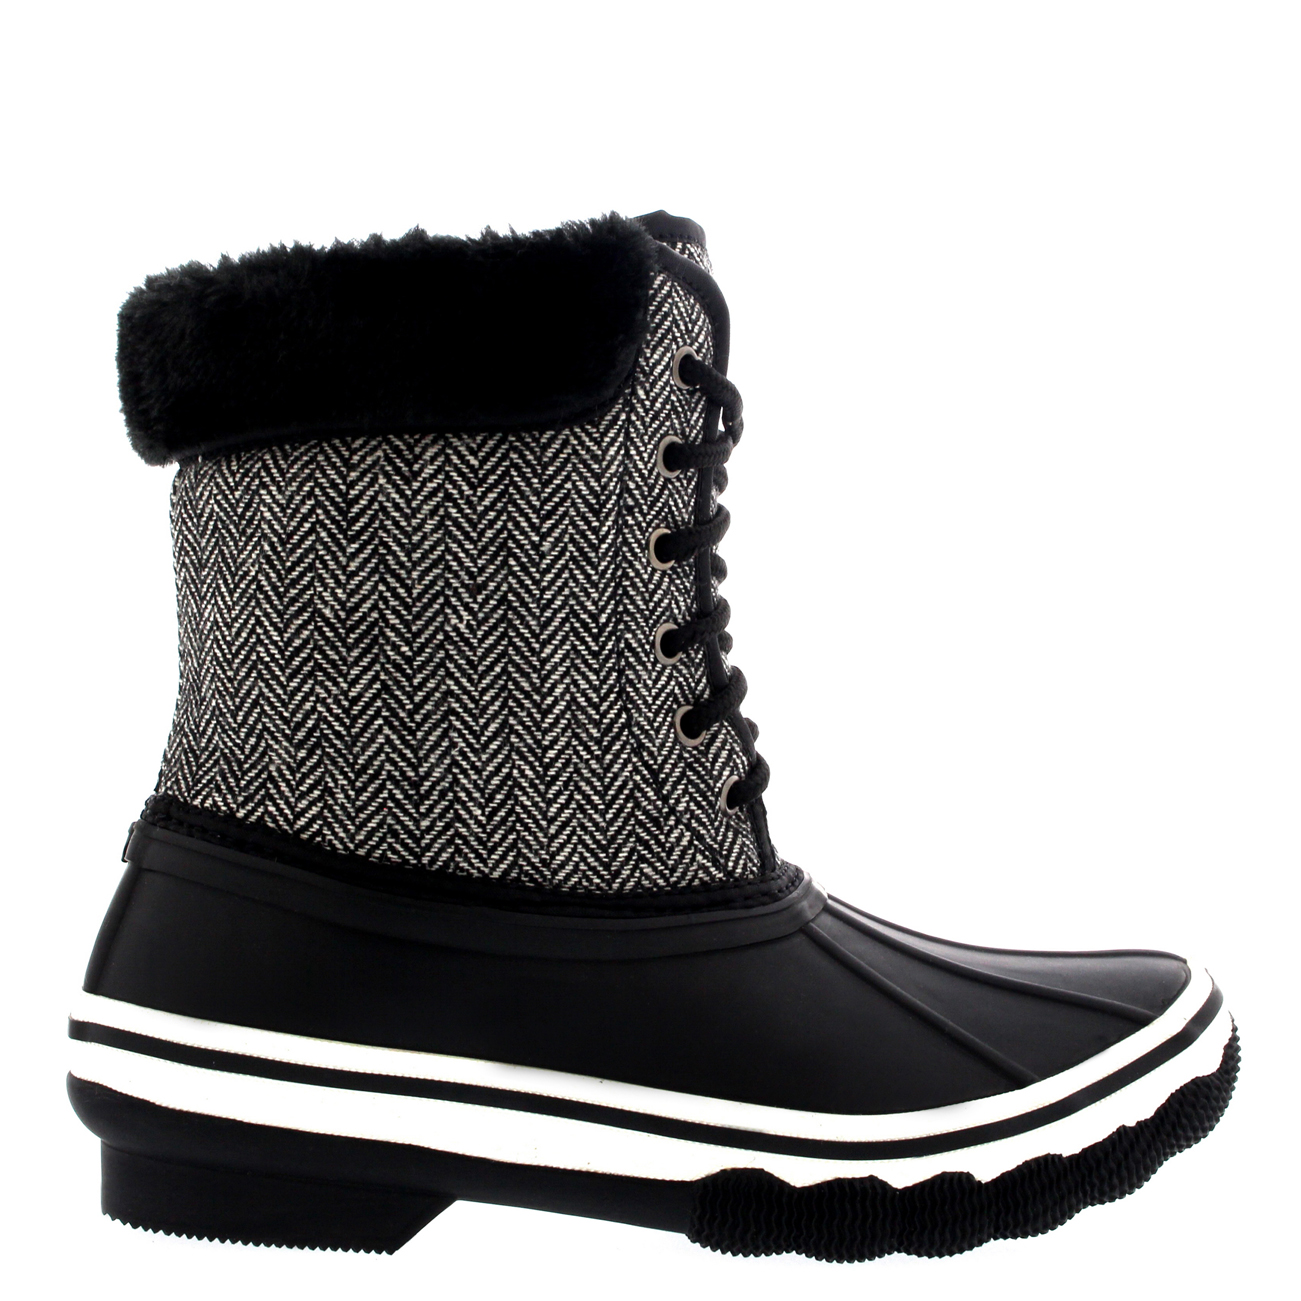 Womens Rubber Sole Deep Tread Winter Textile Fur Cuff Snow ...